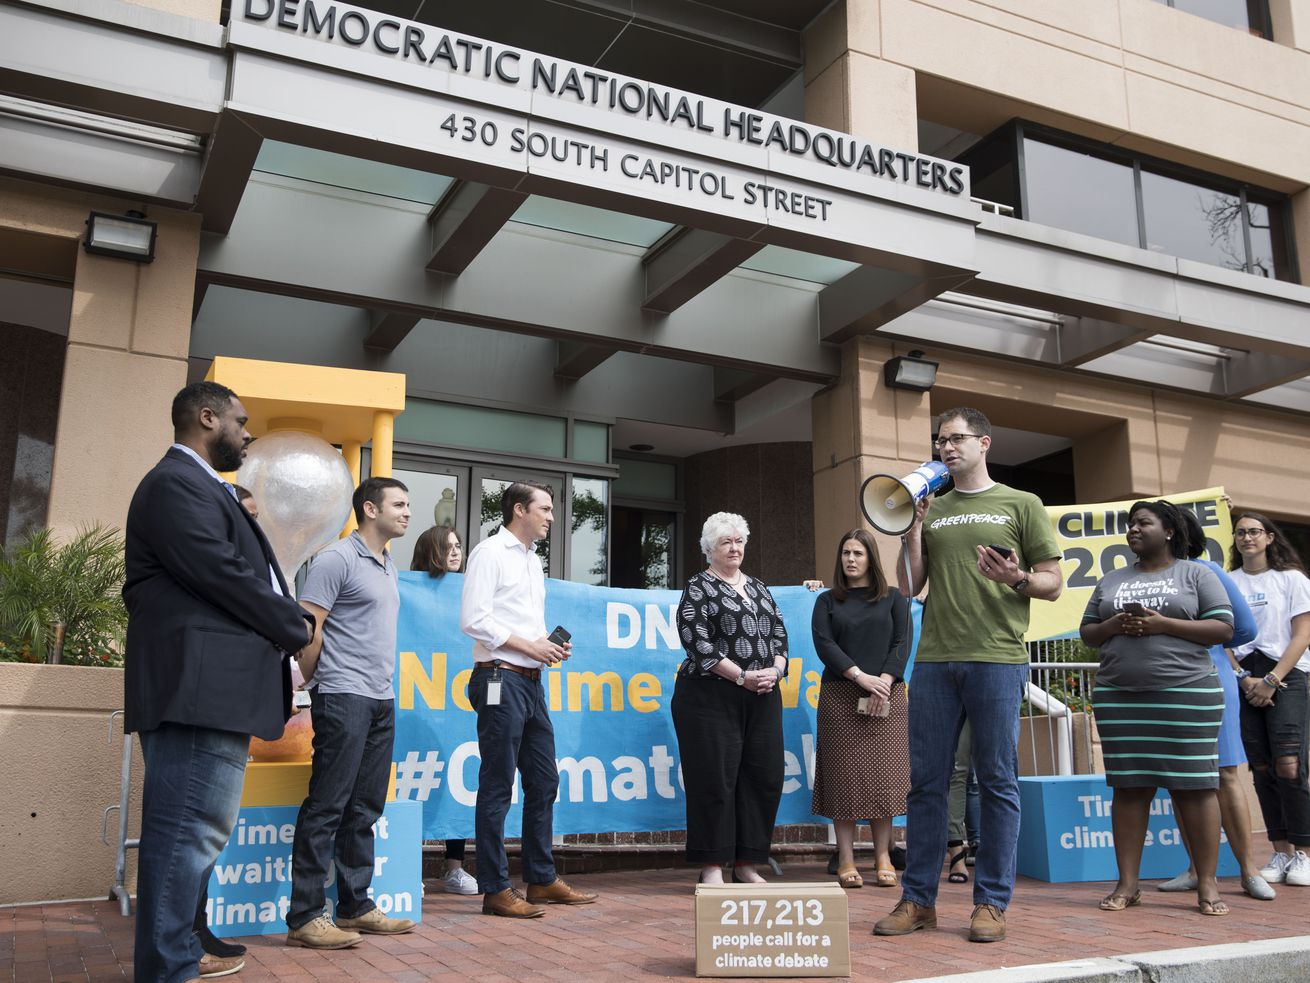 Jack Shapiro speaks in front of the Democratic National Committee headquarters, during a Greenpeace rally to call for a presidential campaign climate debate on June 12, 2019, in Washington, DC.